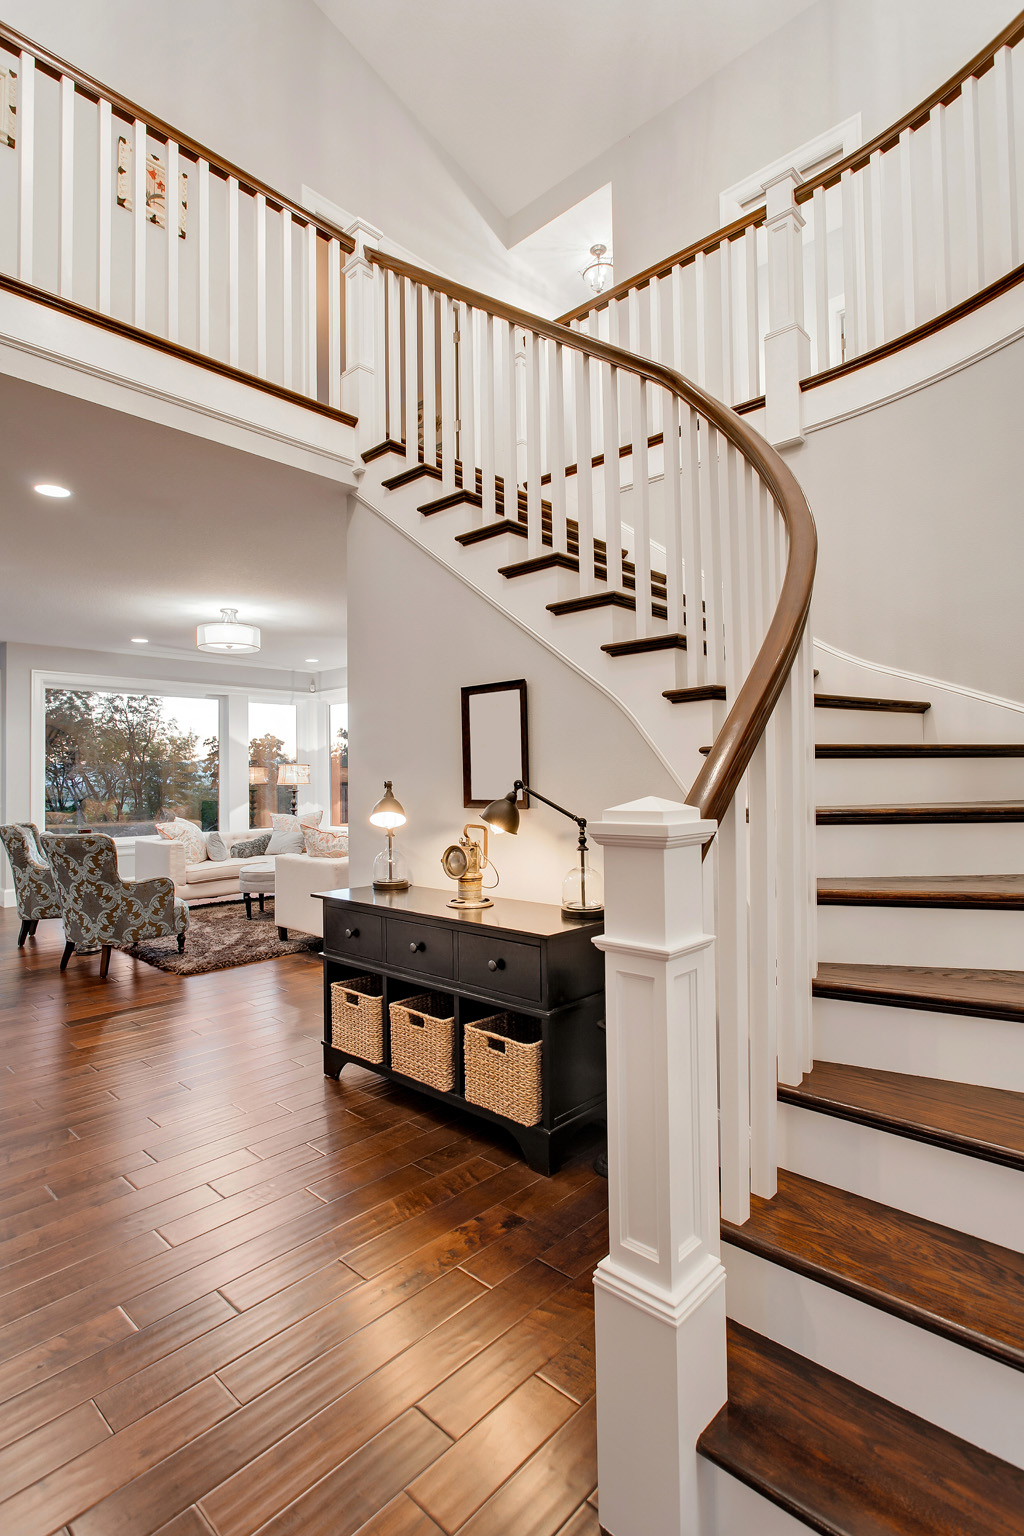 Primed 5060 balusters, 6210 Bending Rail bring and custom box newels lend beautiful lines to this open staircase.